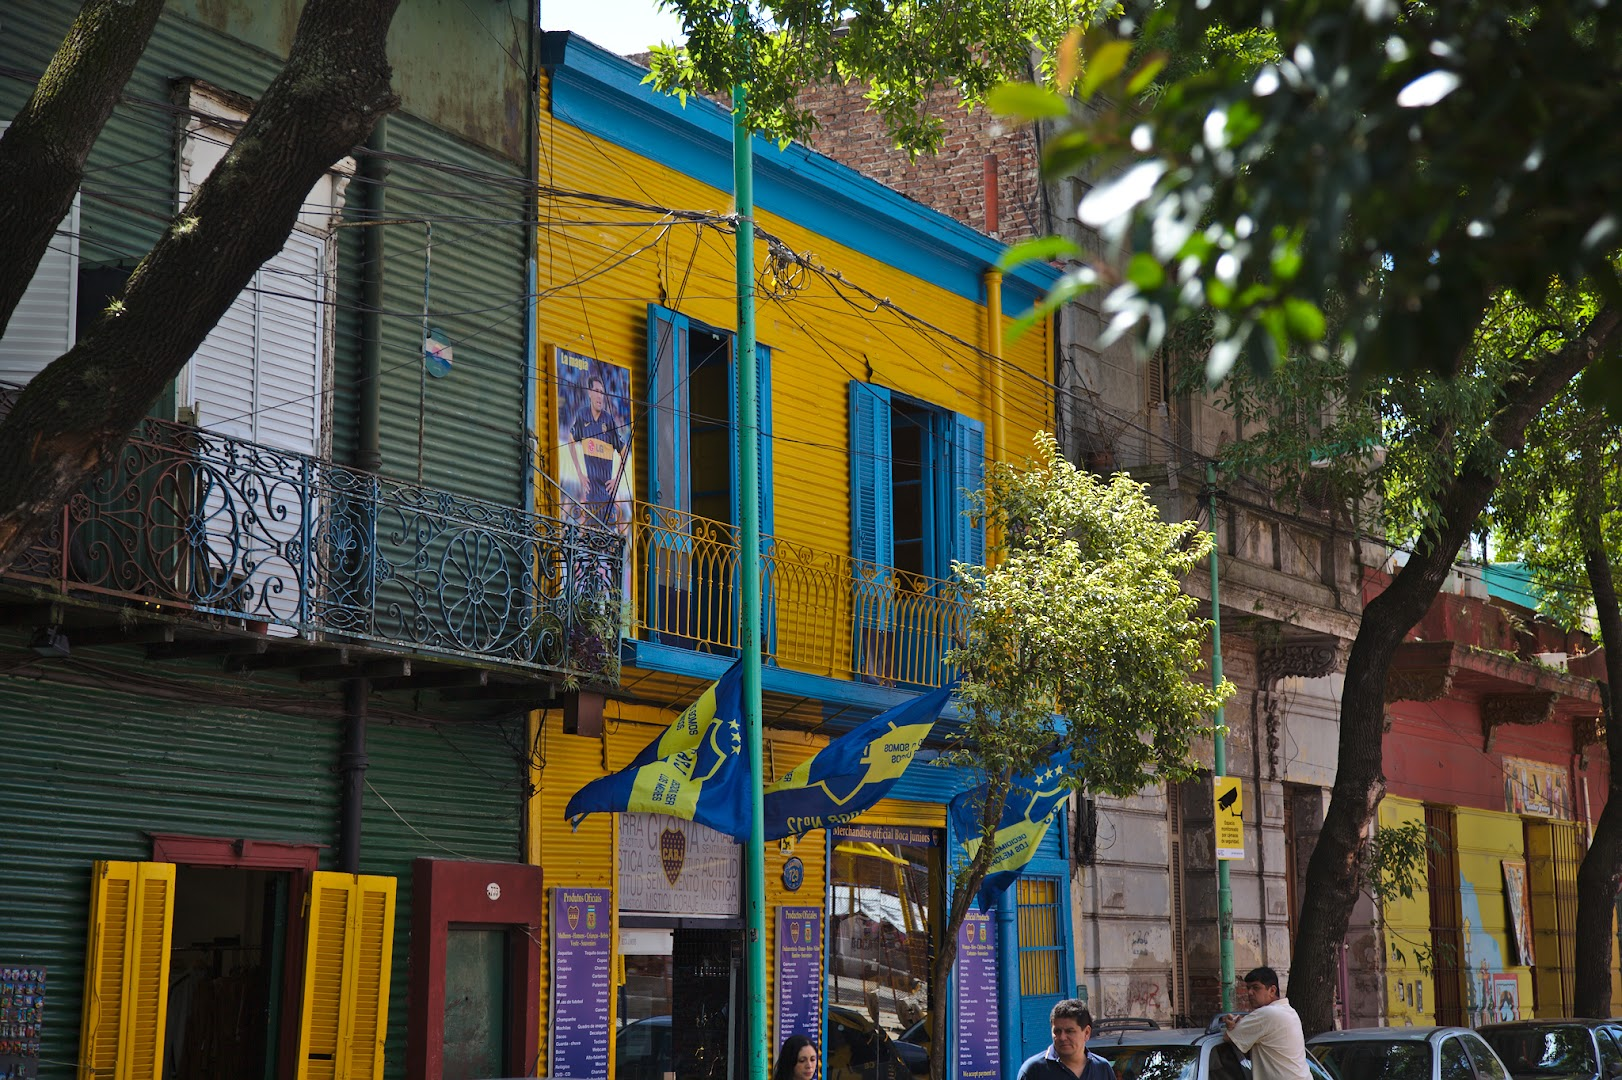 La Boca is famous for colored buildings, painted by Genovese settlers